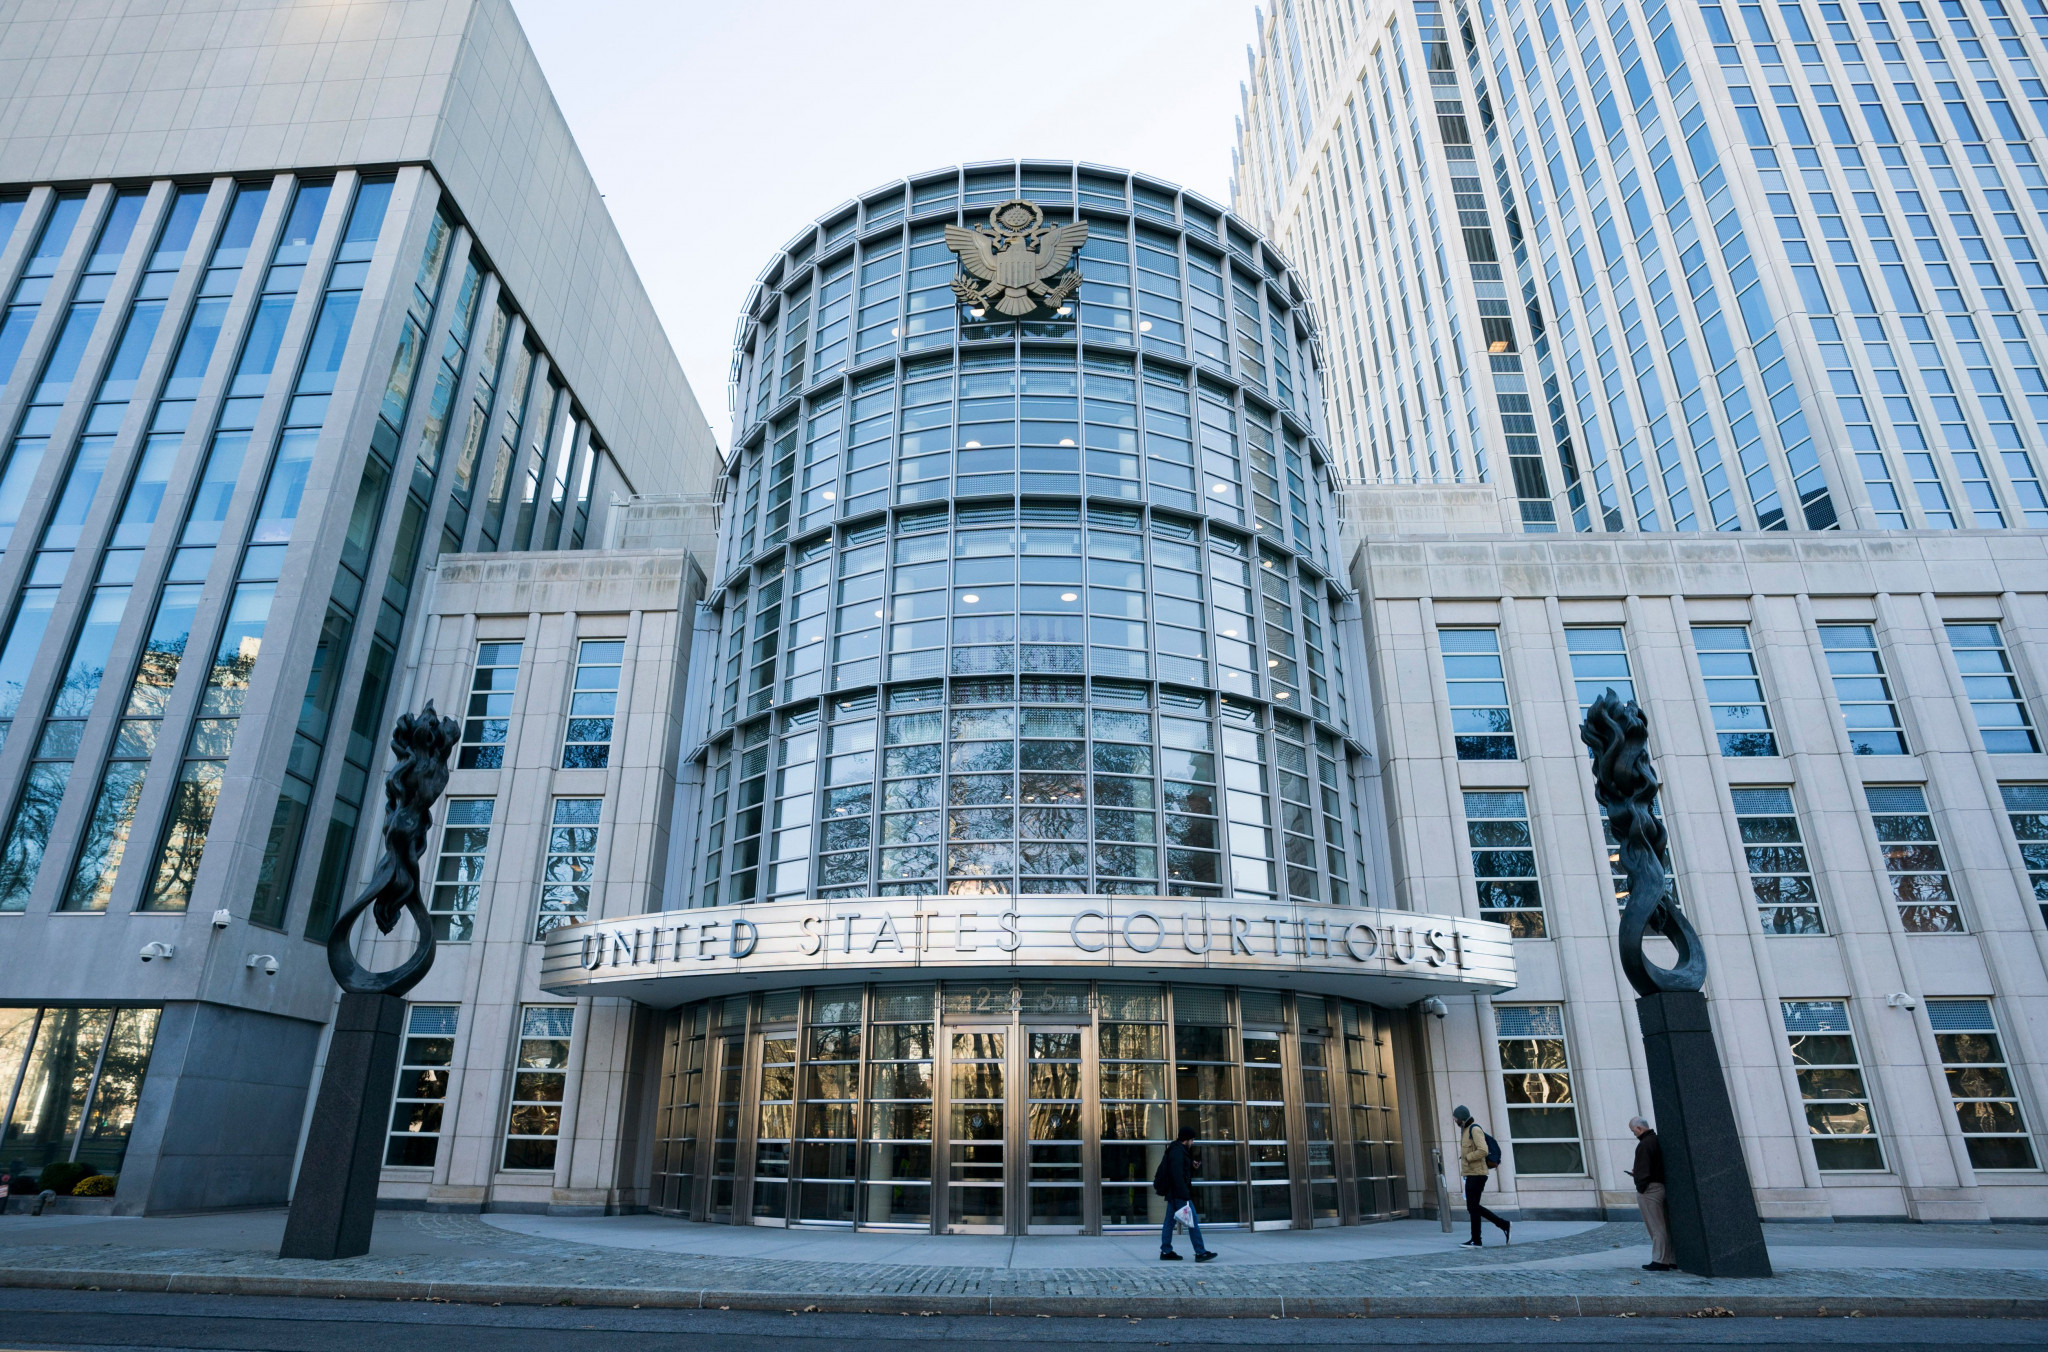 The Federal Courthouse in Brooklyn, New York, where Juan Ángel Napout of Paraguay, José Maria Marin of Brazil, and Manuel Burga of Peru are on trial in the FIFA corruption scandal ©Getty Images